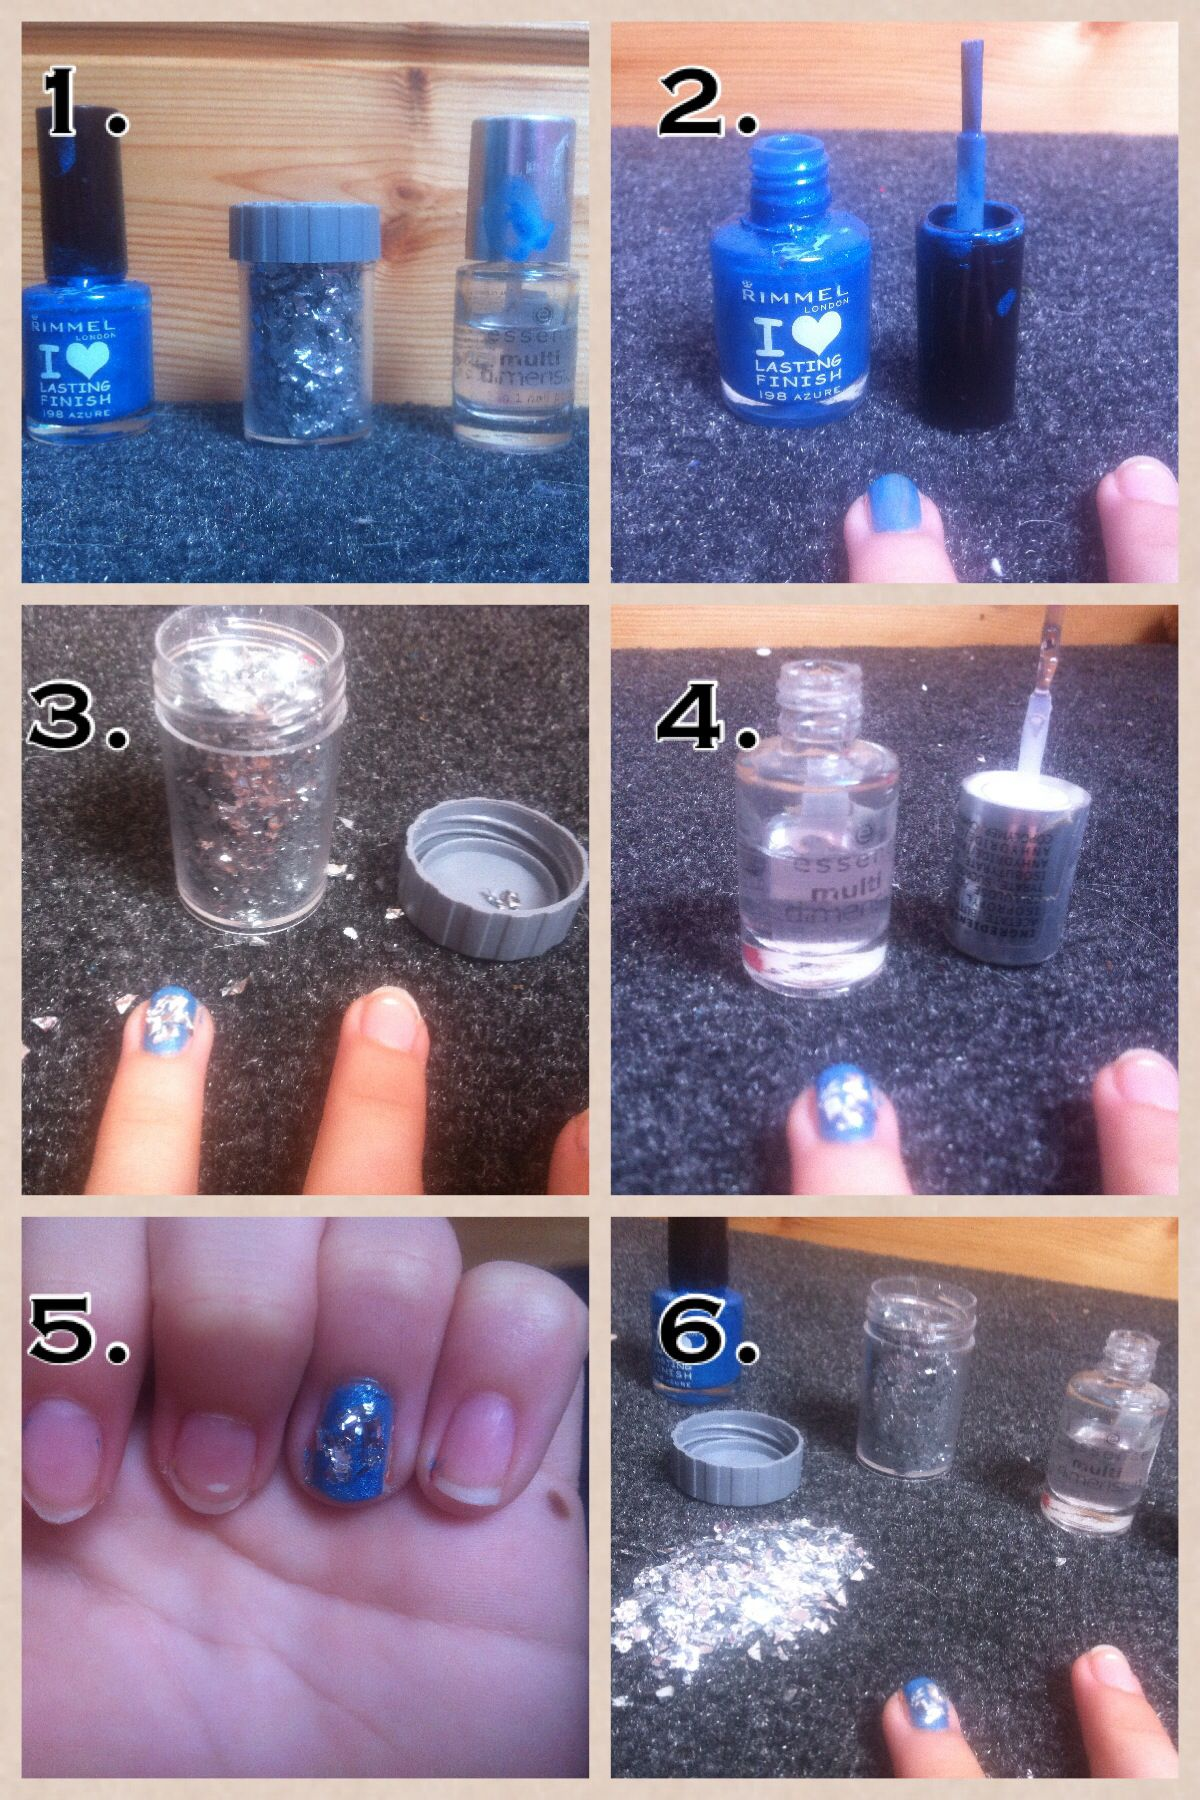 This Is A Really Easy And Cool Thing To Do On Your Nails I Hope You Enjoy As Much Enjoyed Doing It Myself